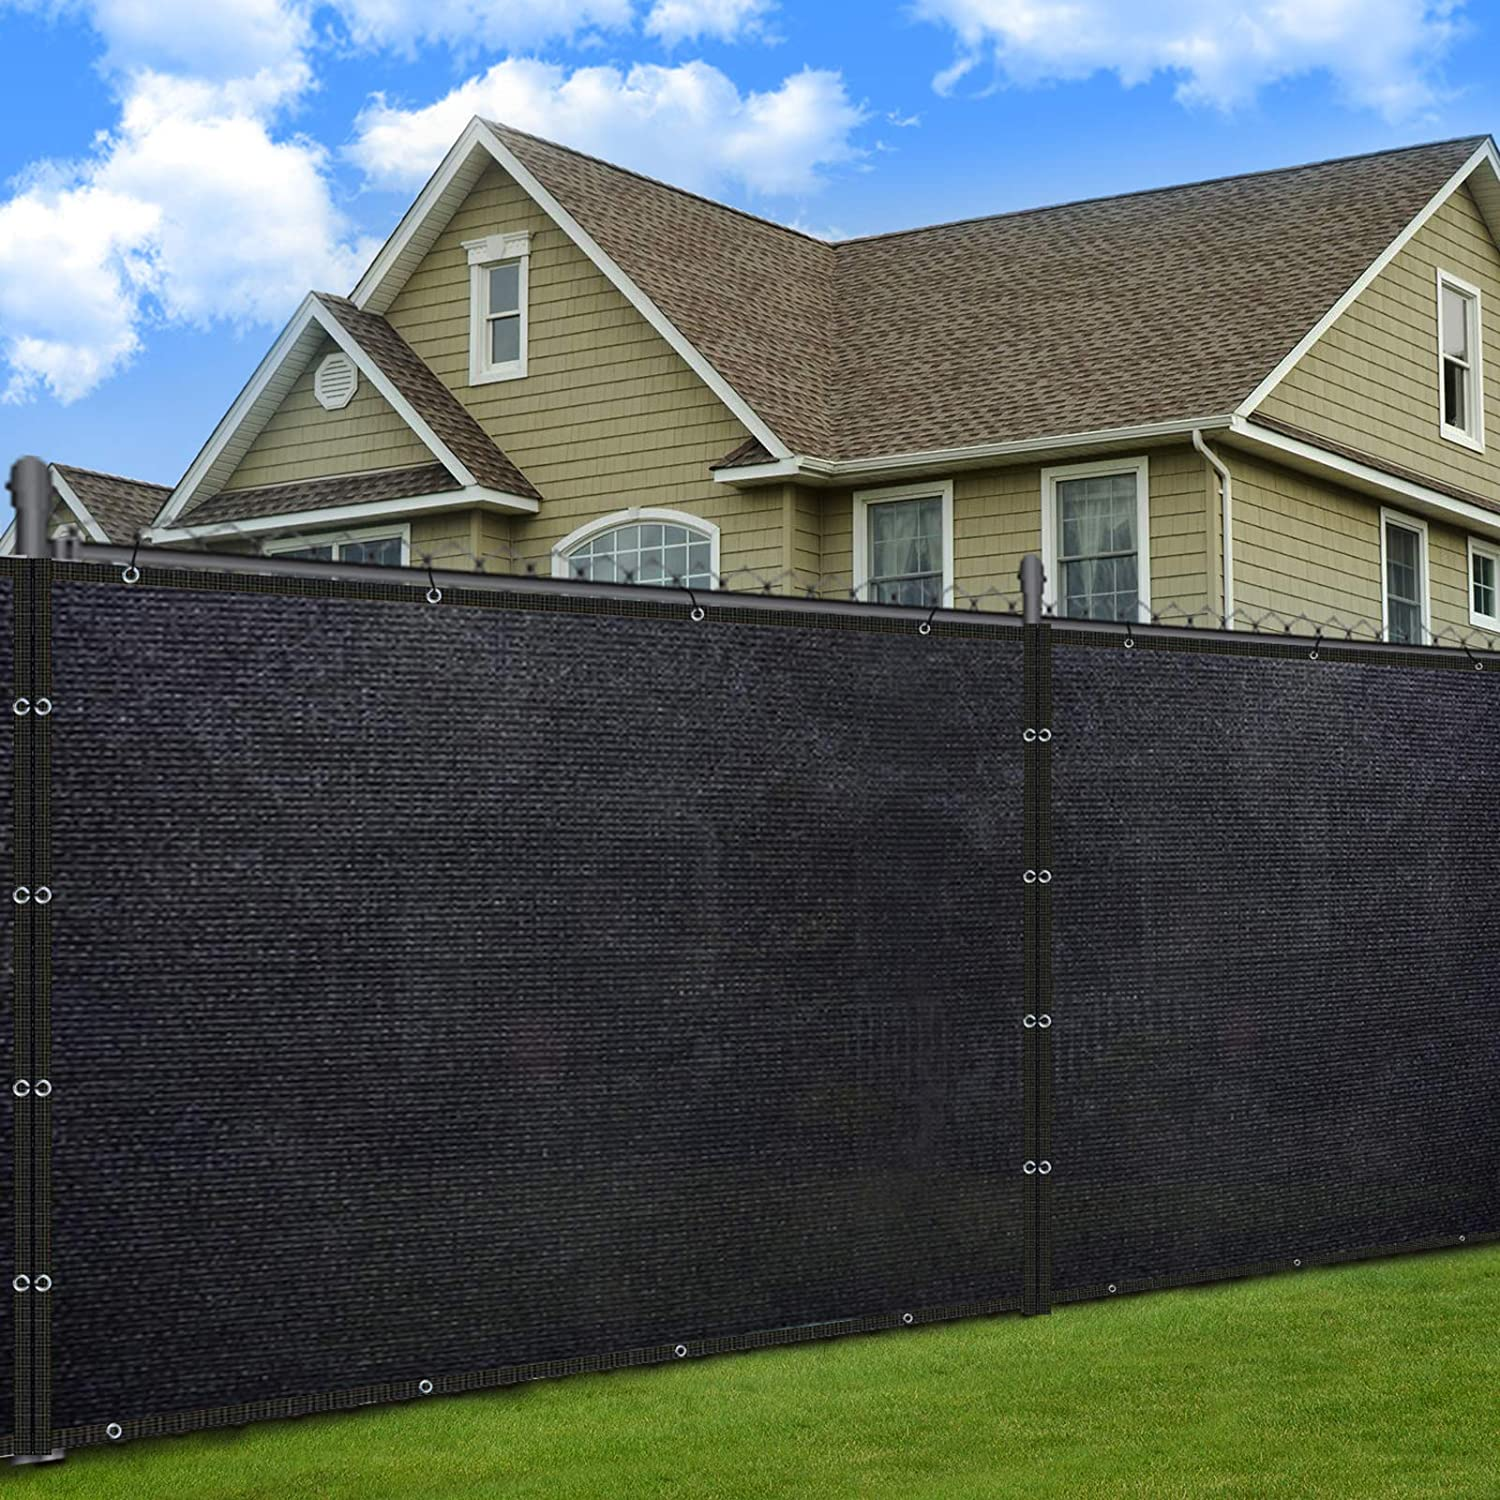 SUNLAX Fence Privacy Screen, 5'x50' Windscreen Black Fencing Commericial Mesh Tarp Net Cover for Outdoor Patio Yard